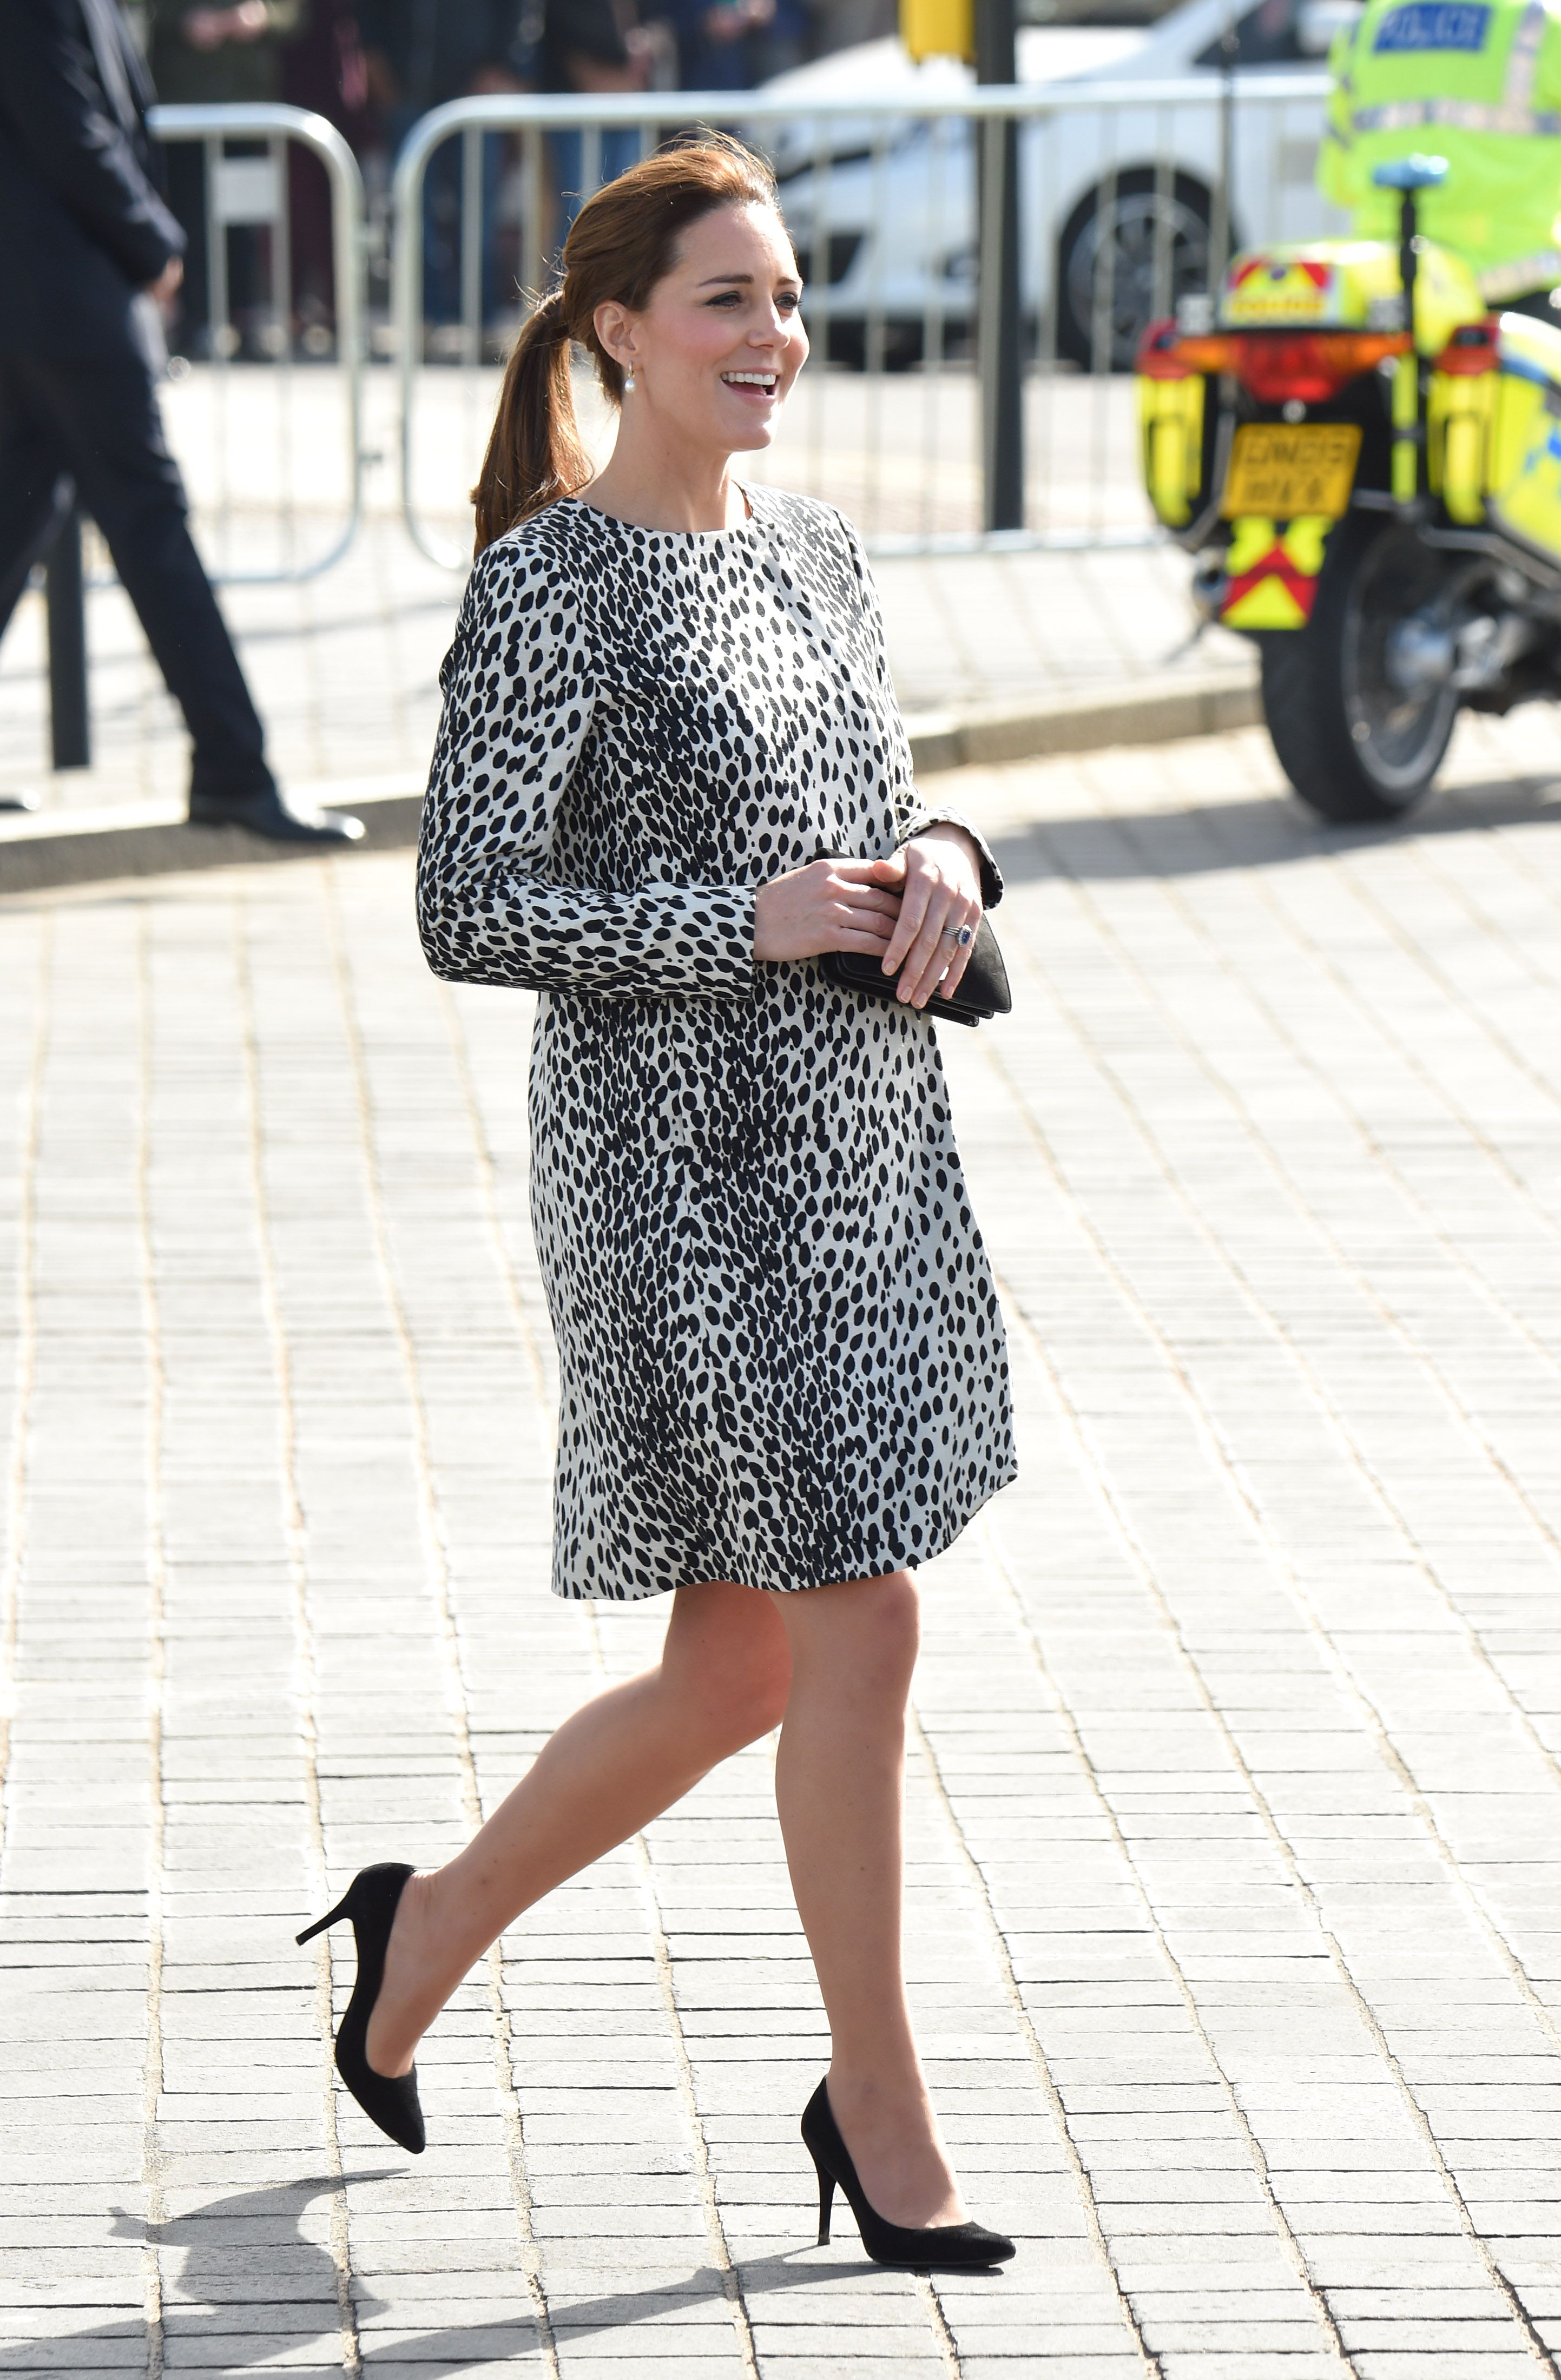 Kate Middleton Recycles Artsy Printed Coat For Gallery Tour Racked